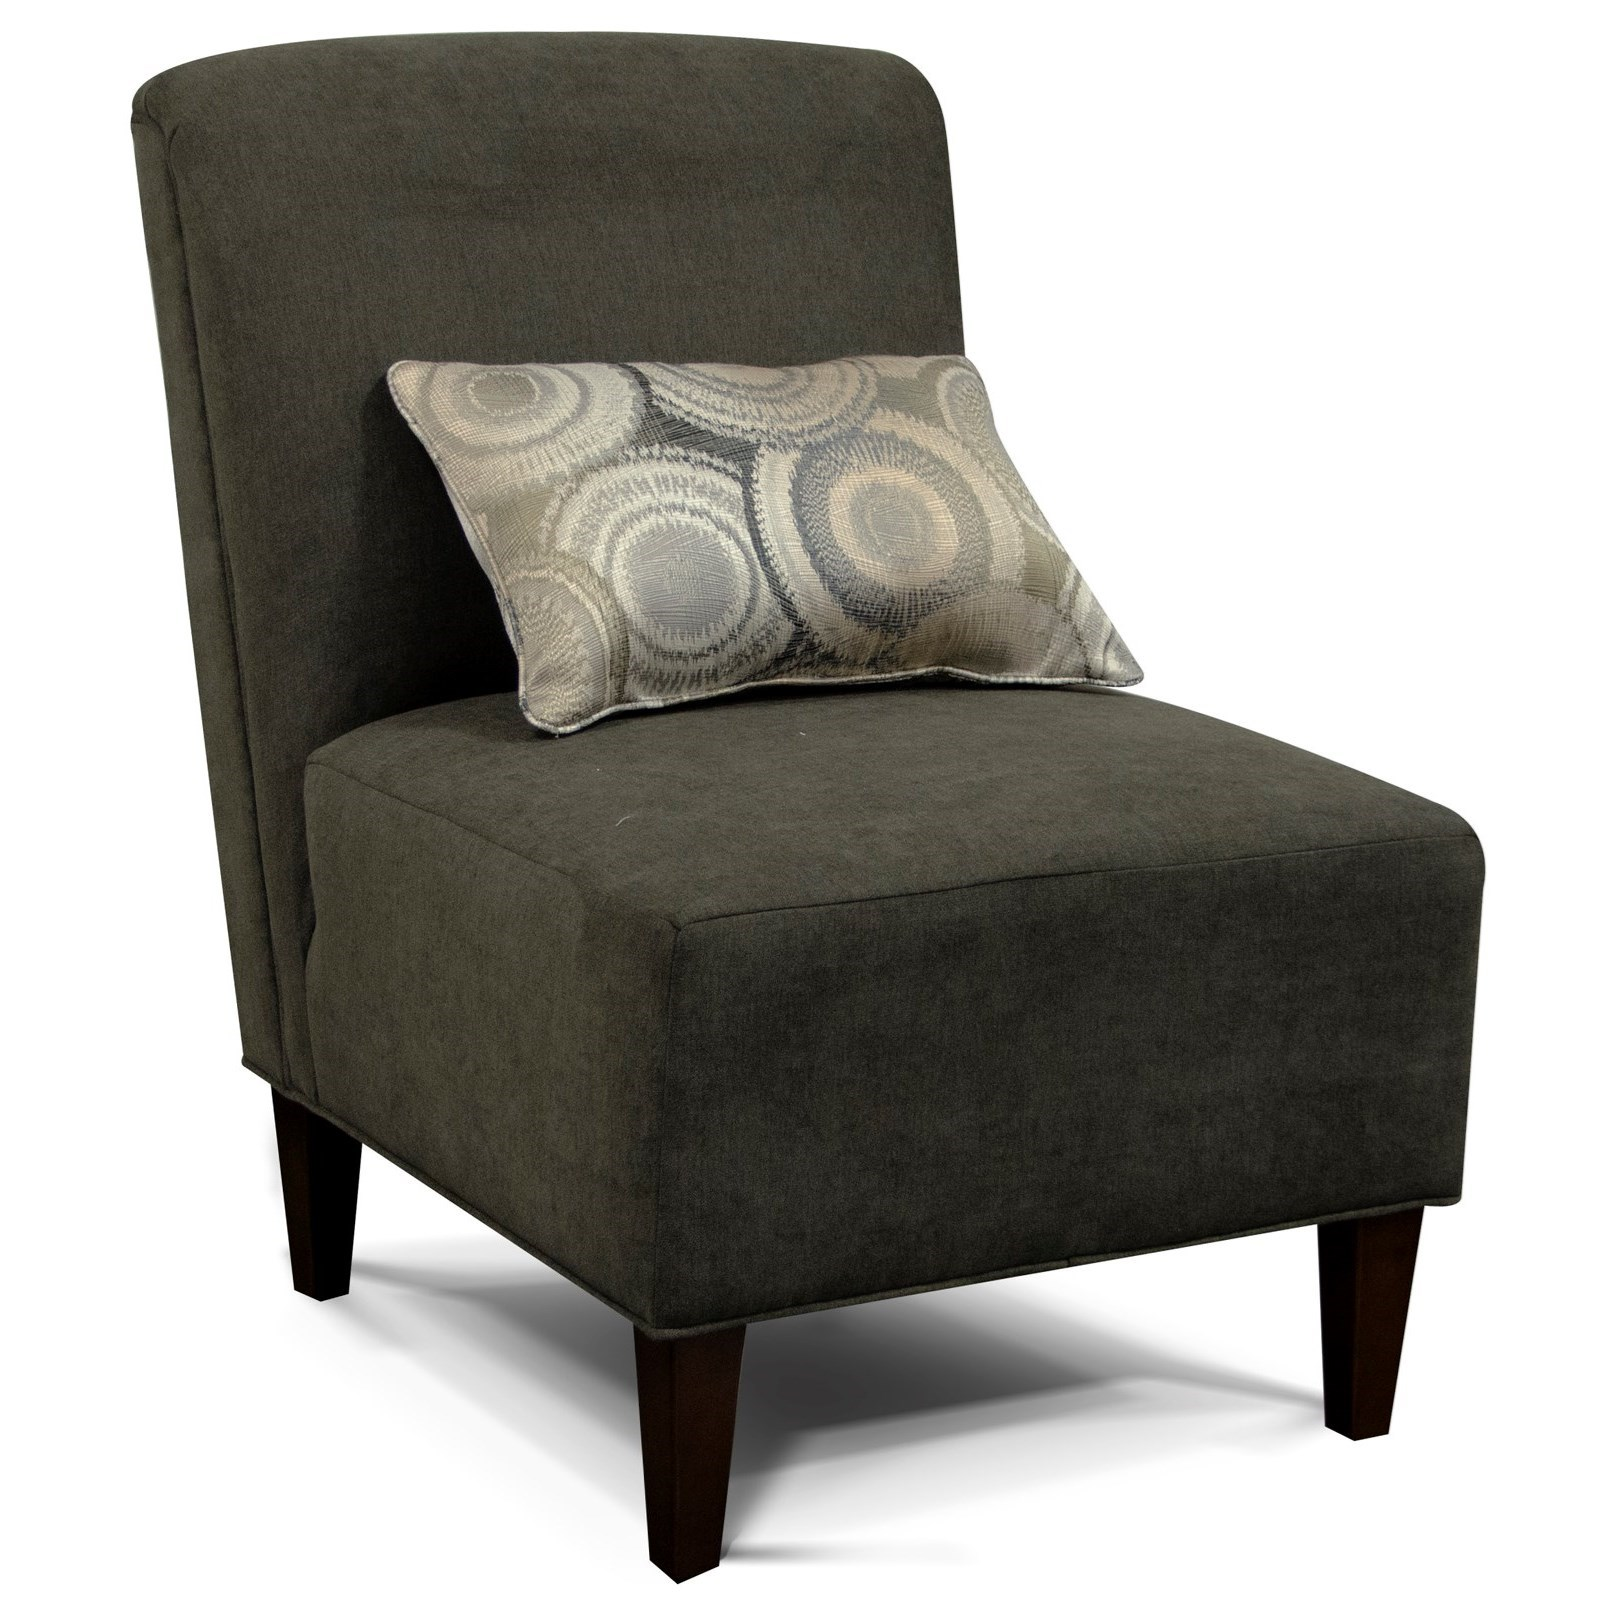 Sunset Chair by England at Virginia Furniture Market